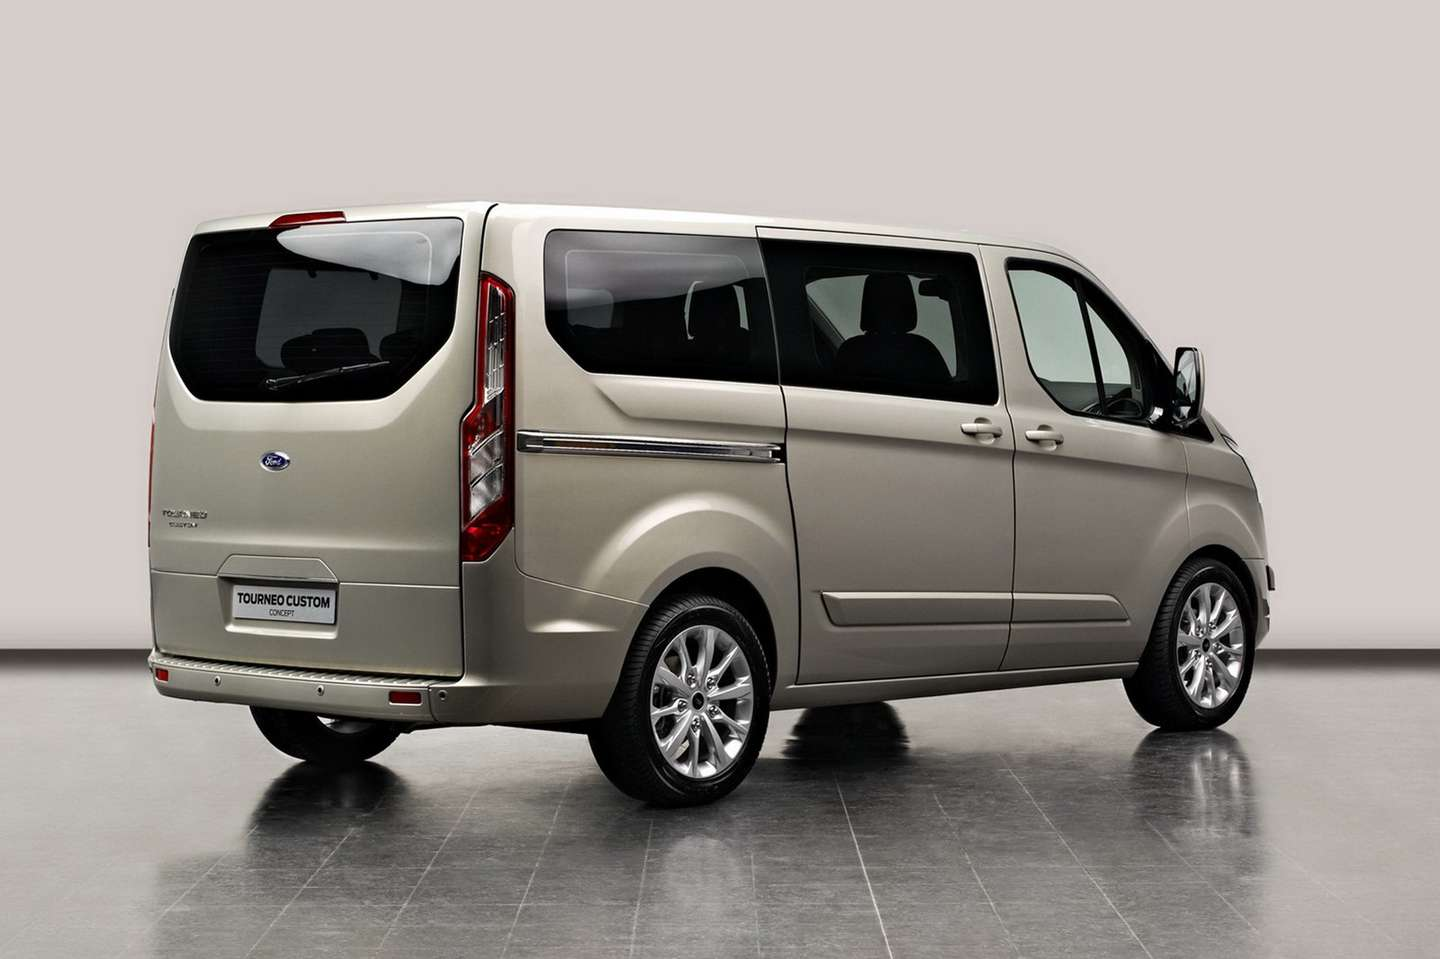 Ford Tourneo #7870350